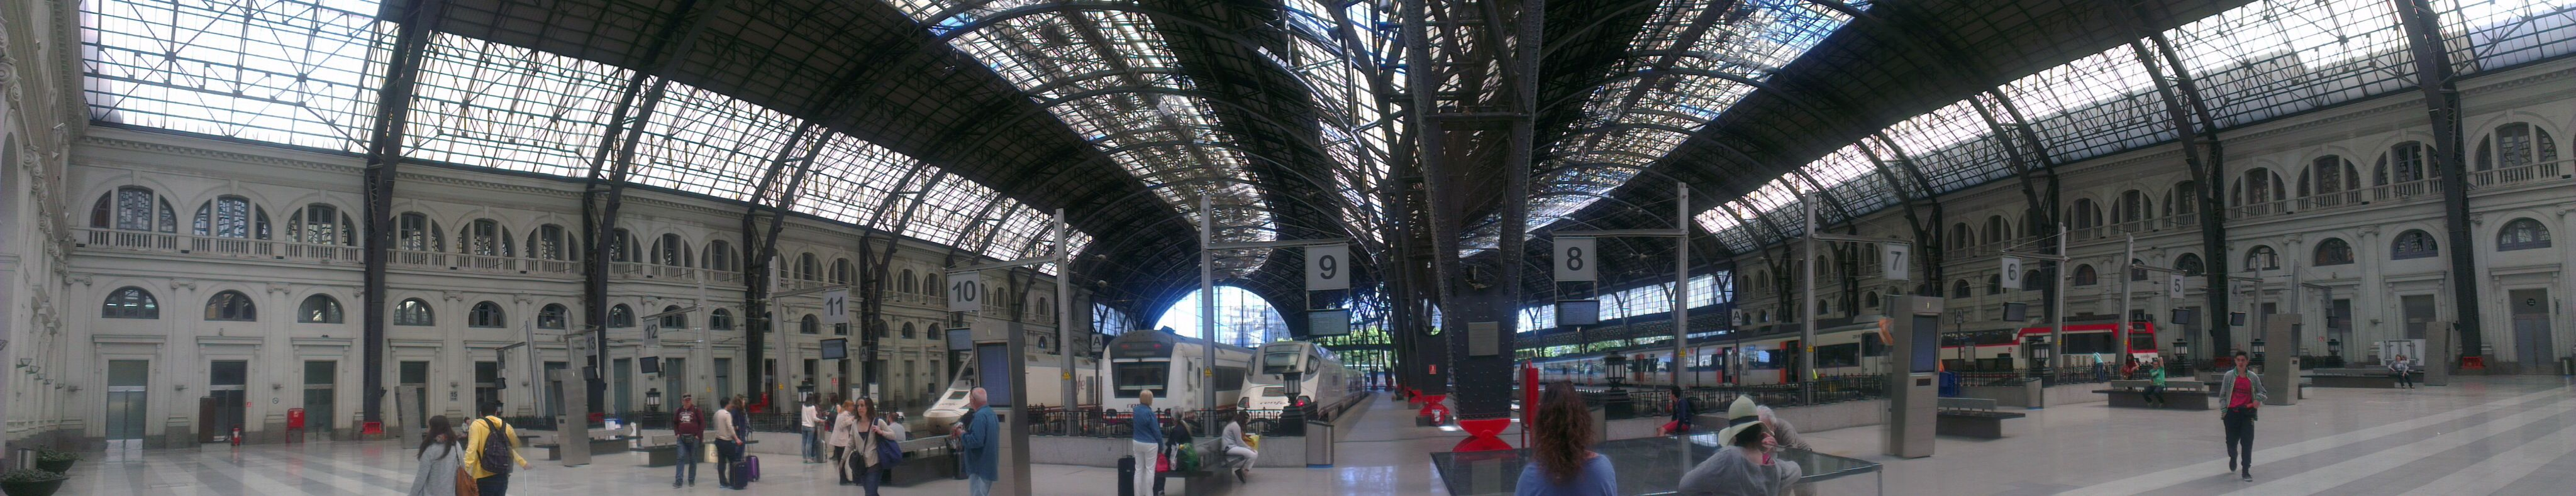 Such a beautufull station, spain, barcelona